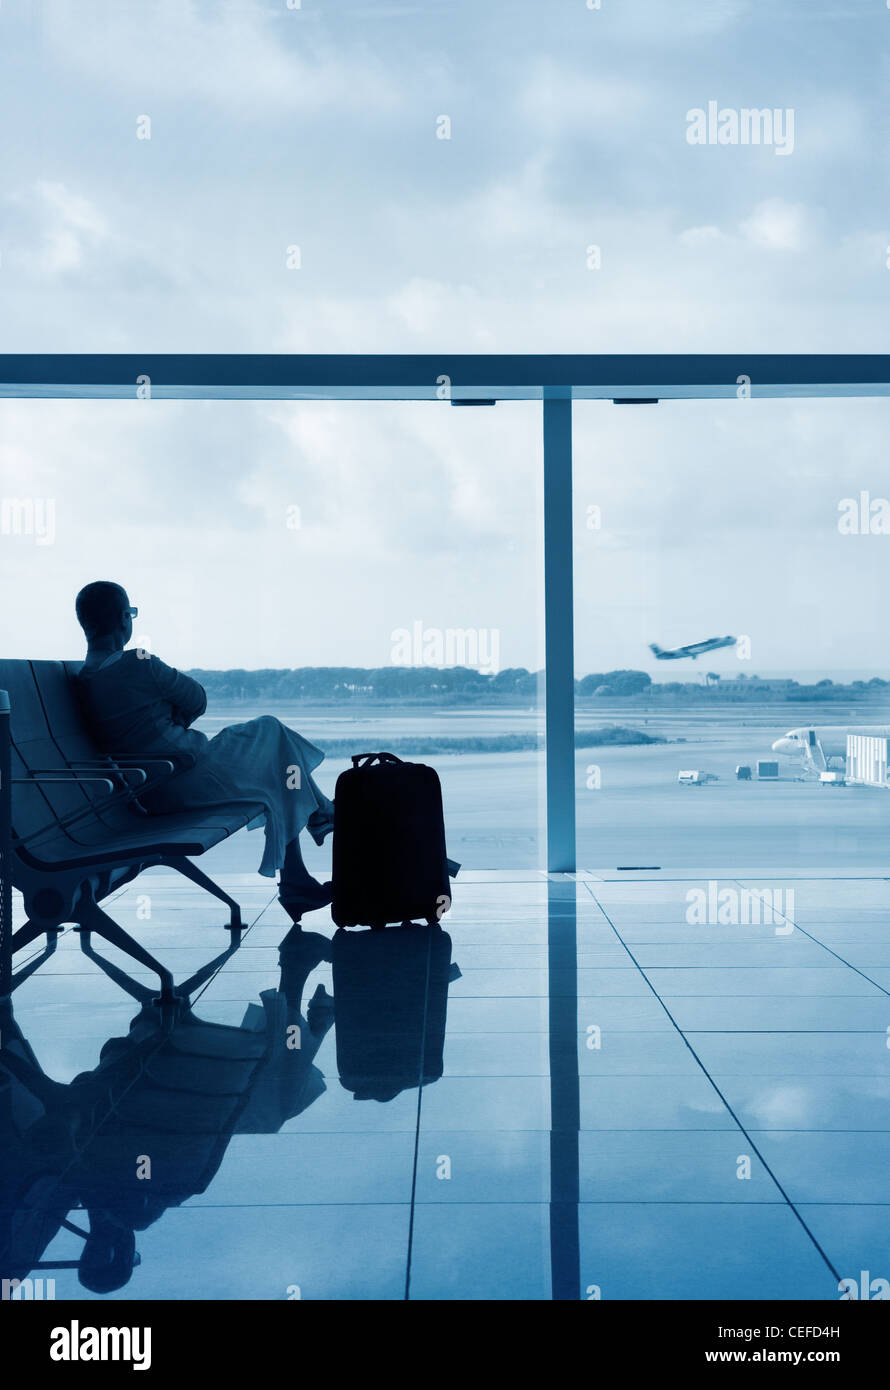 Lady in a lobby airport waiting for her flight, looking through a glass with solar protection. Stock Photo